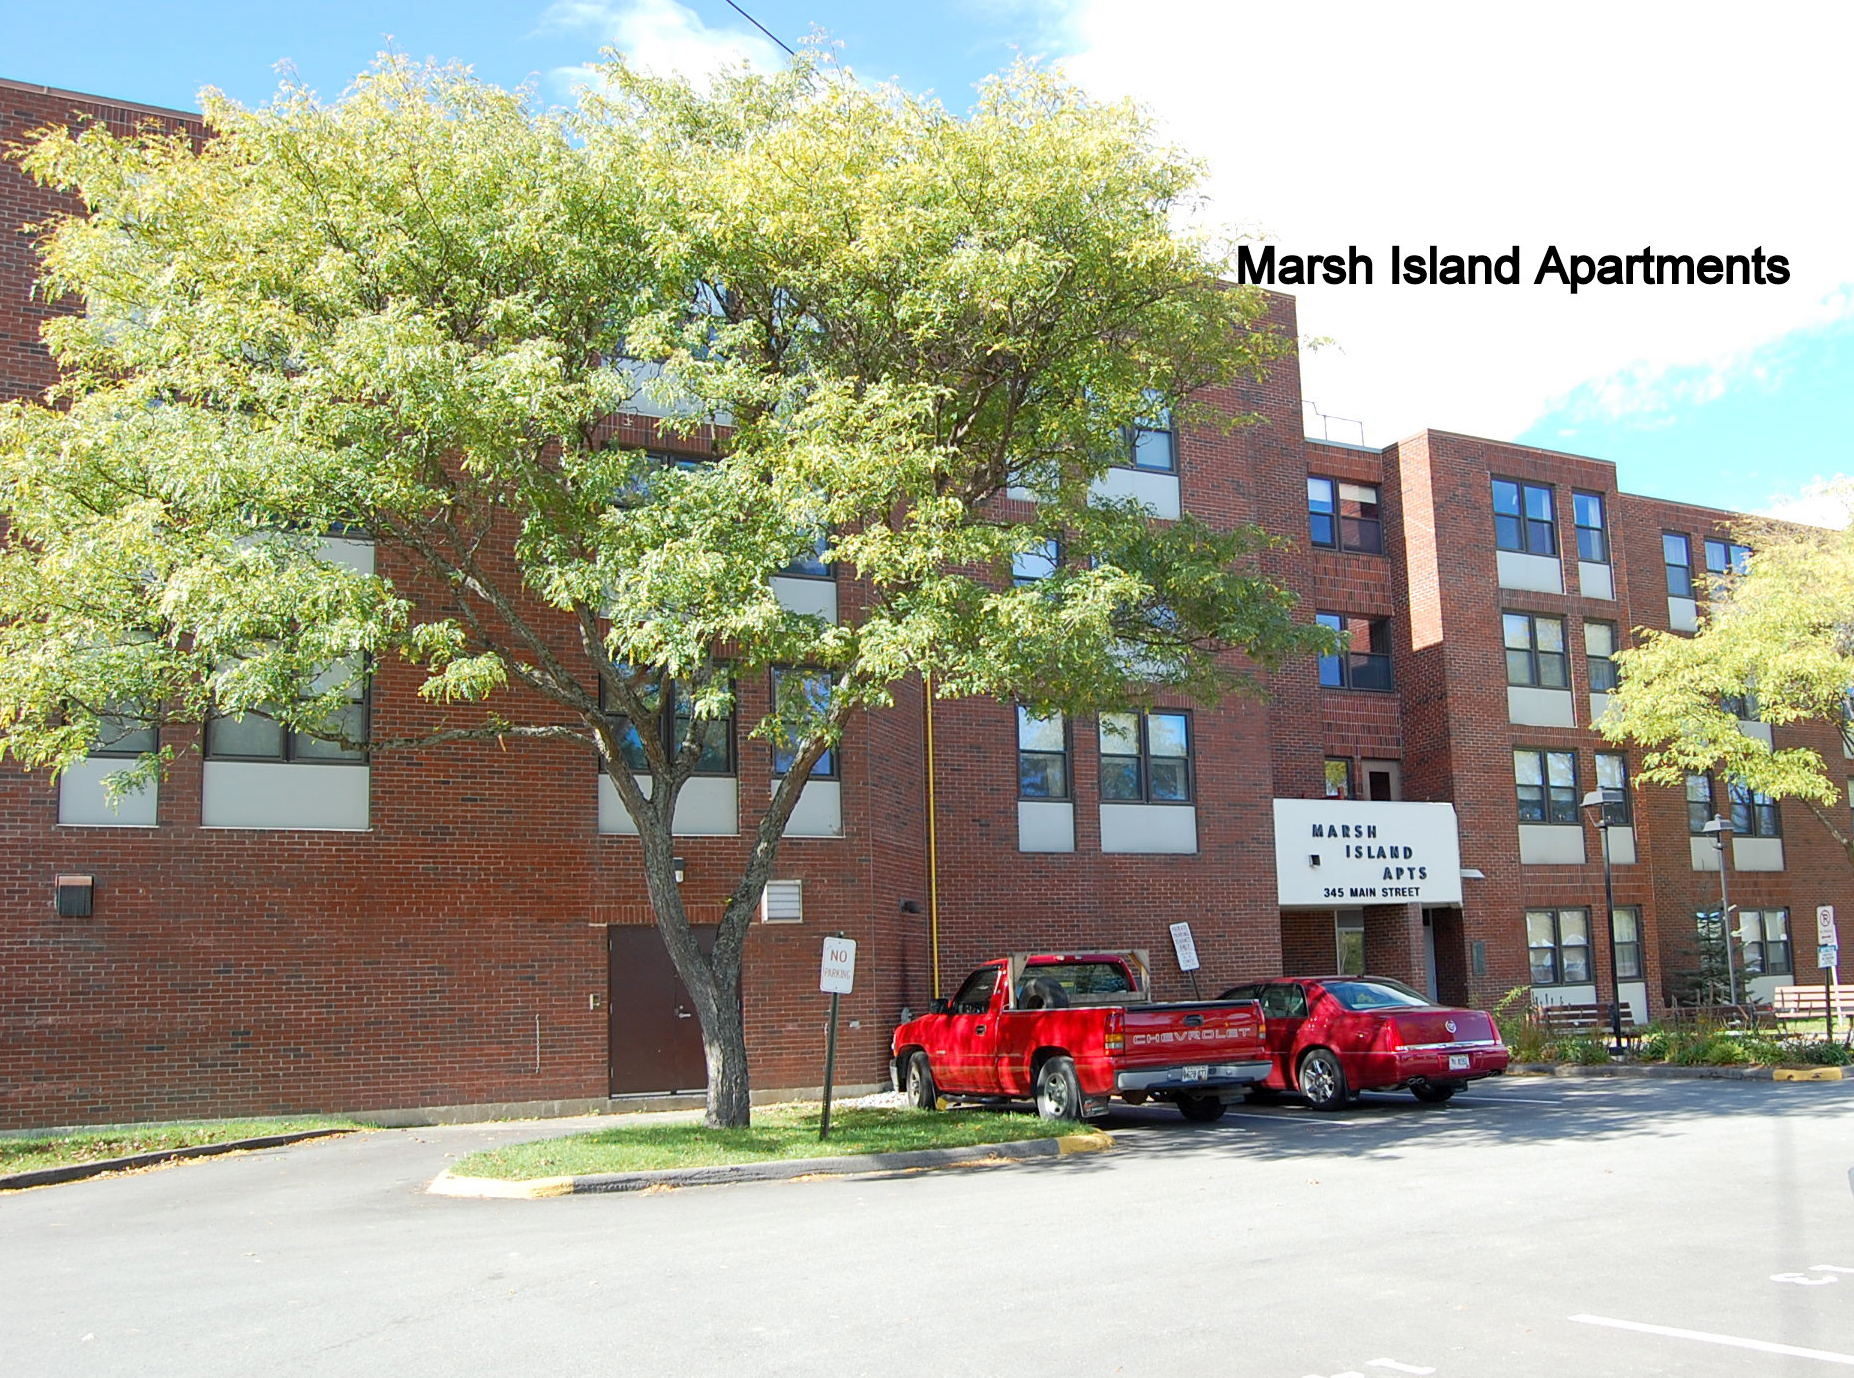 Marsh Island Apartments